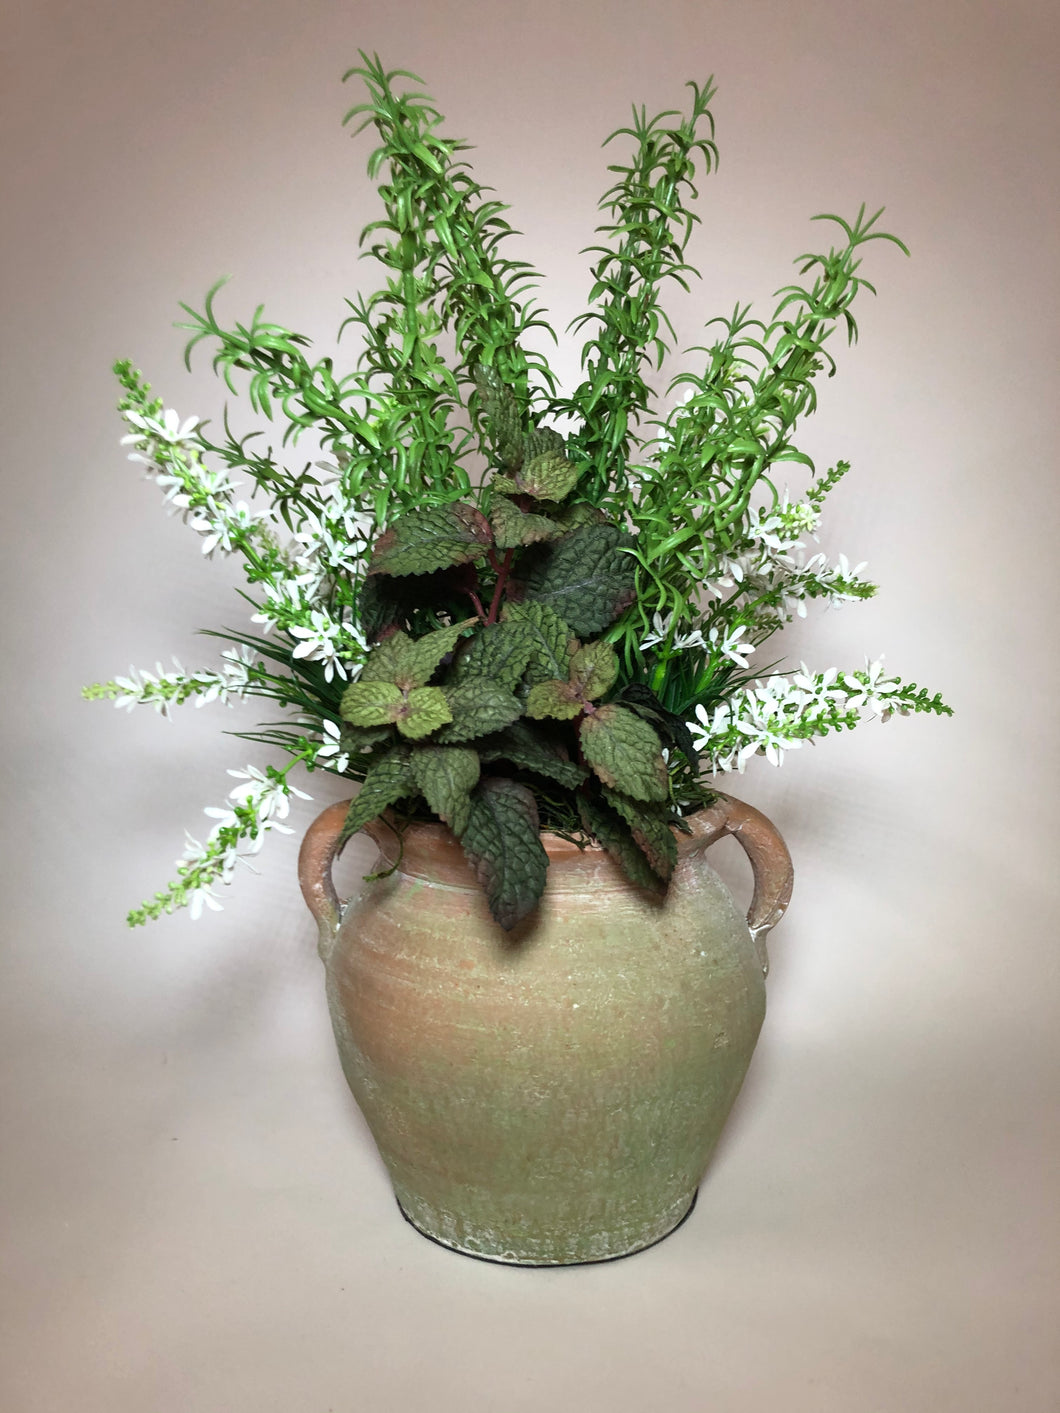 Garden Pot with Herbs